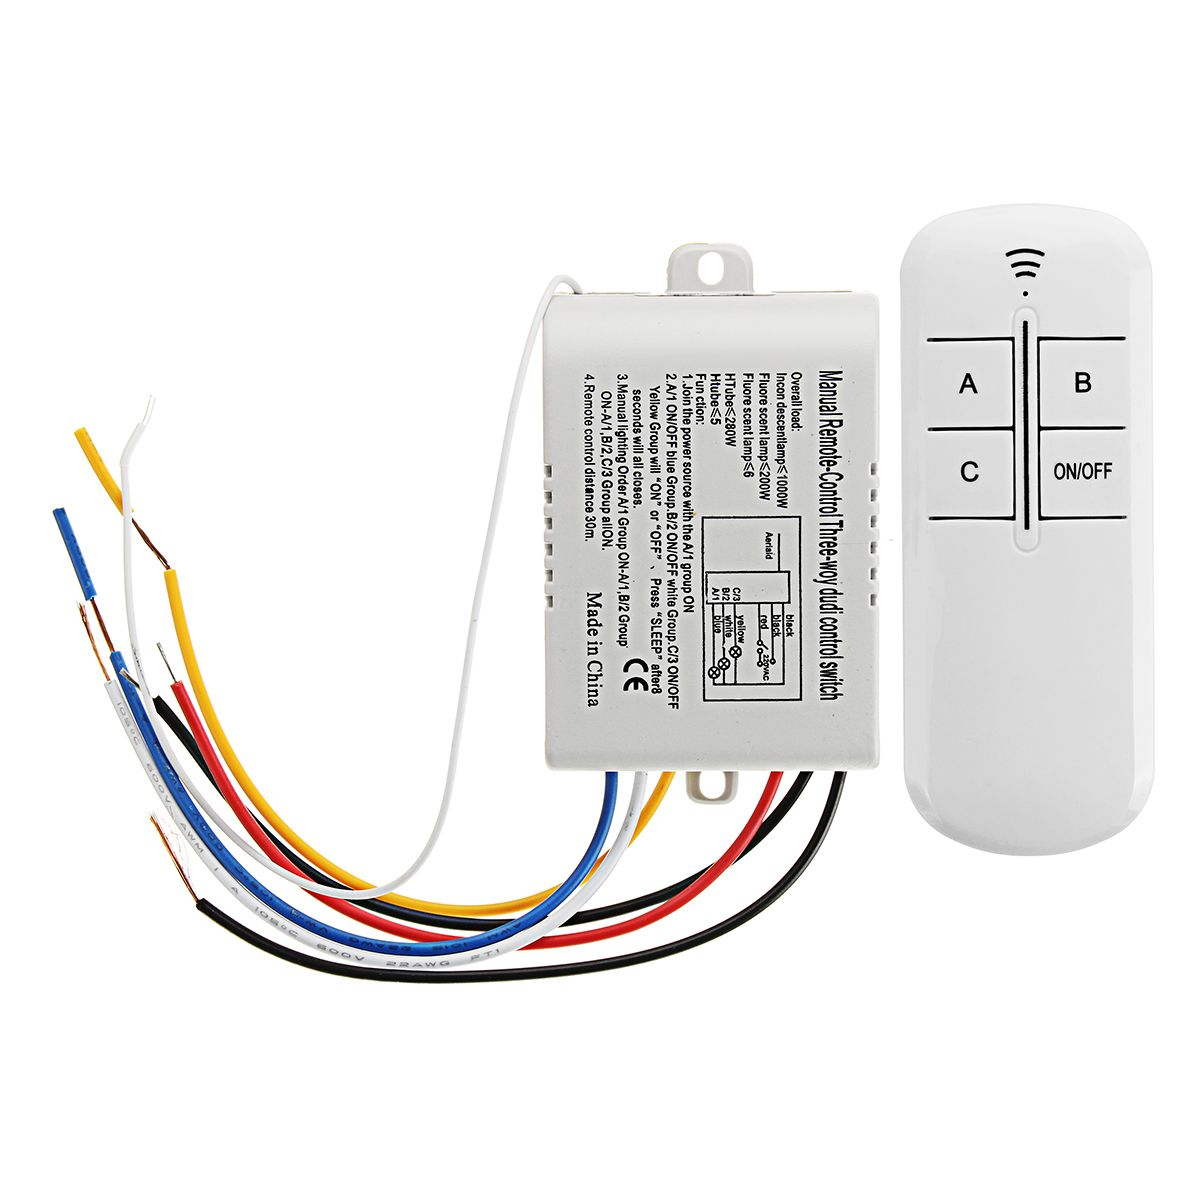 small resolution of 3 ways on off wireless remote control switch receiver transmitter for led lamp ac220v